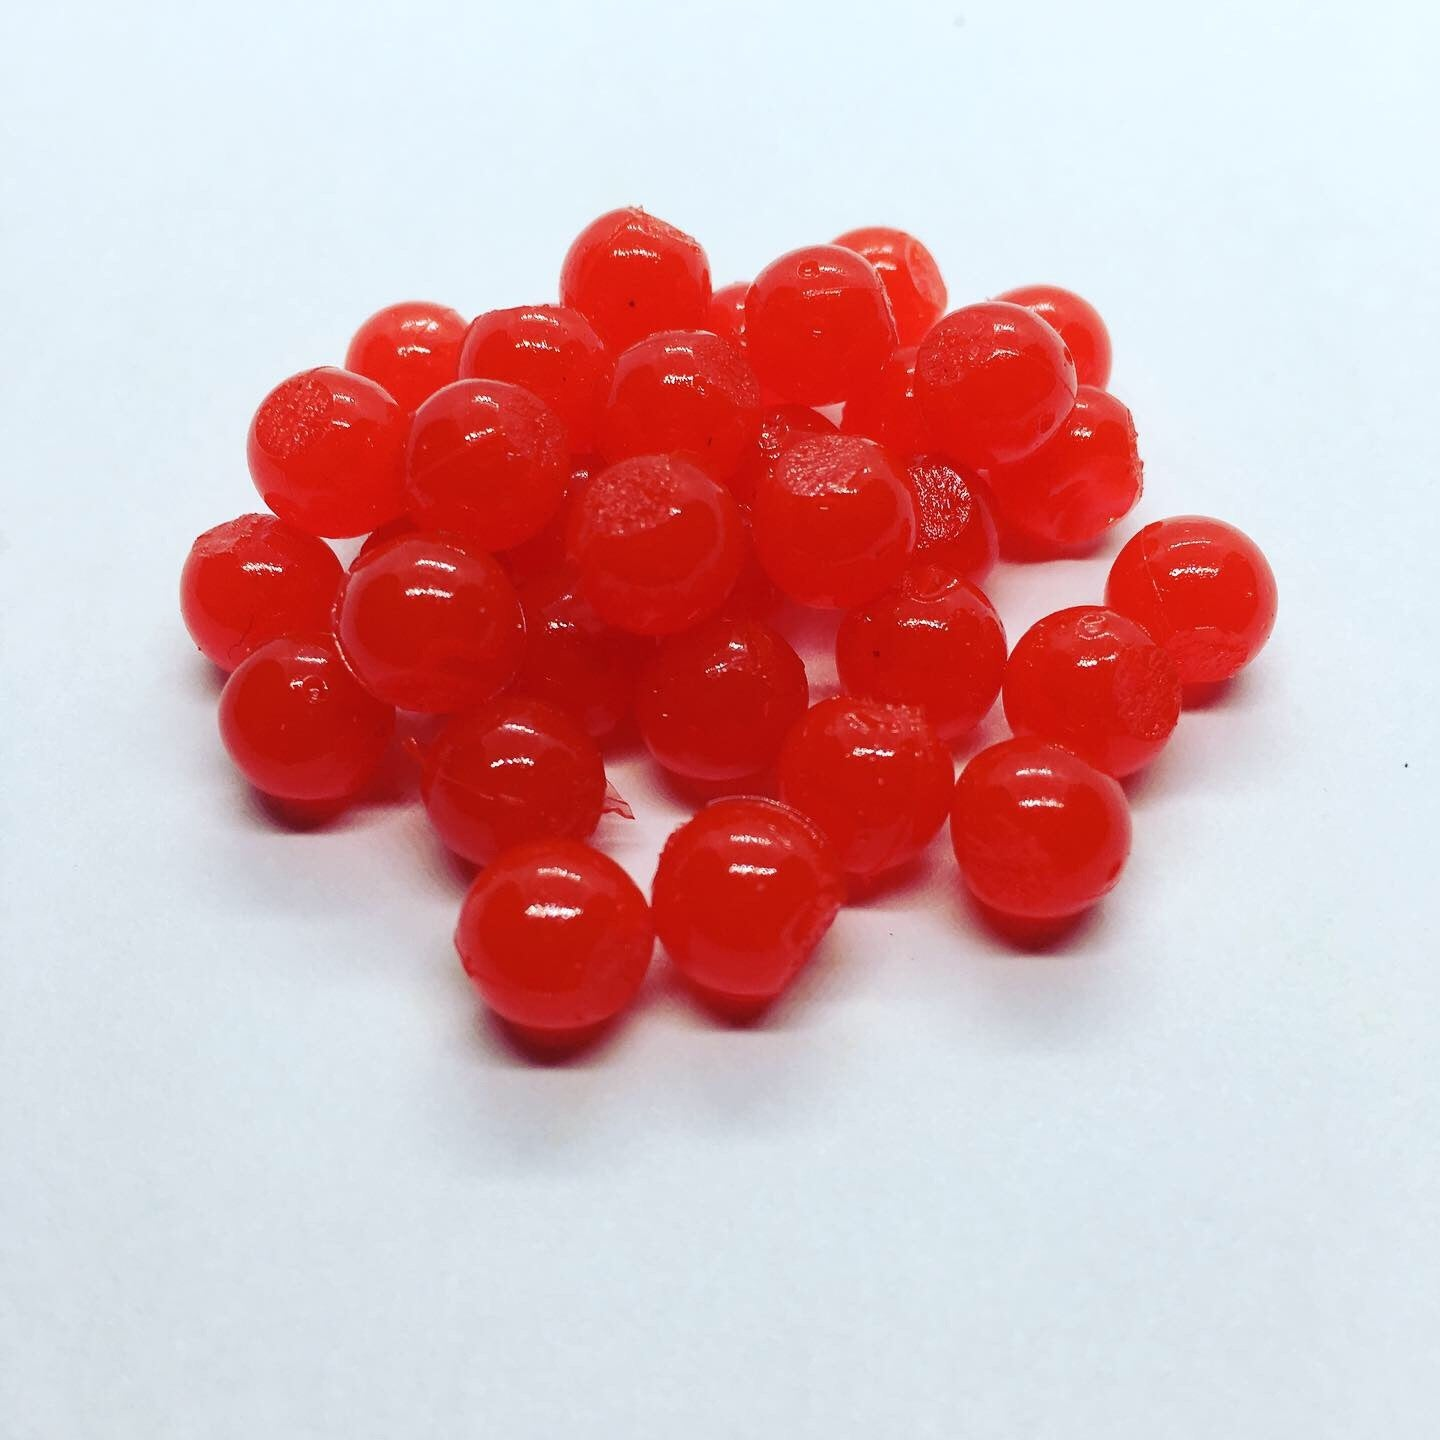 Salmon Eggs: Red